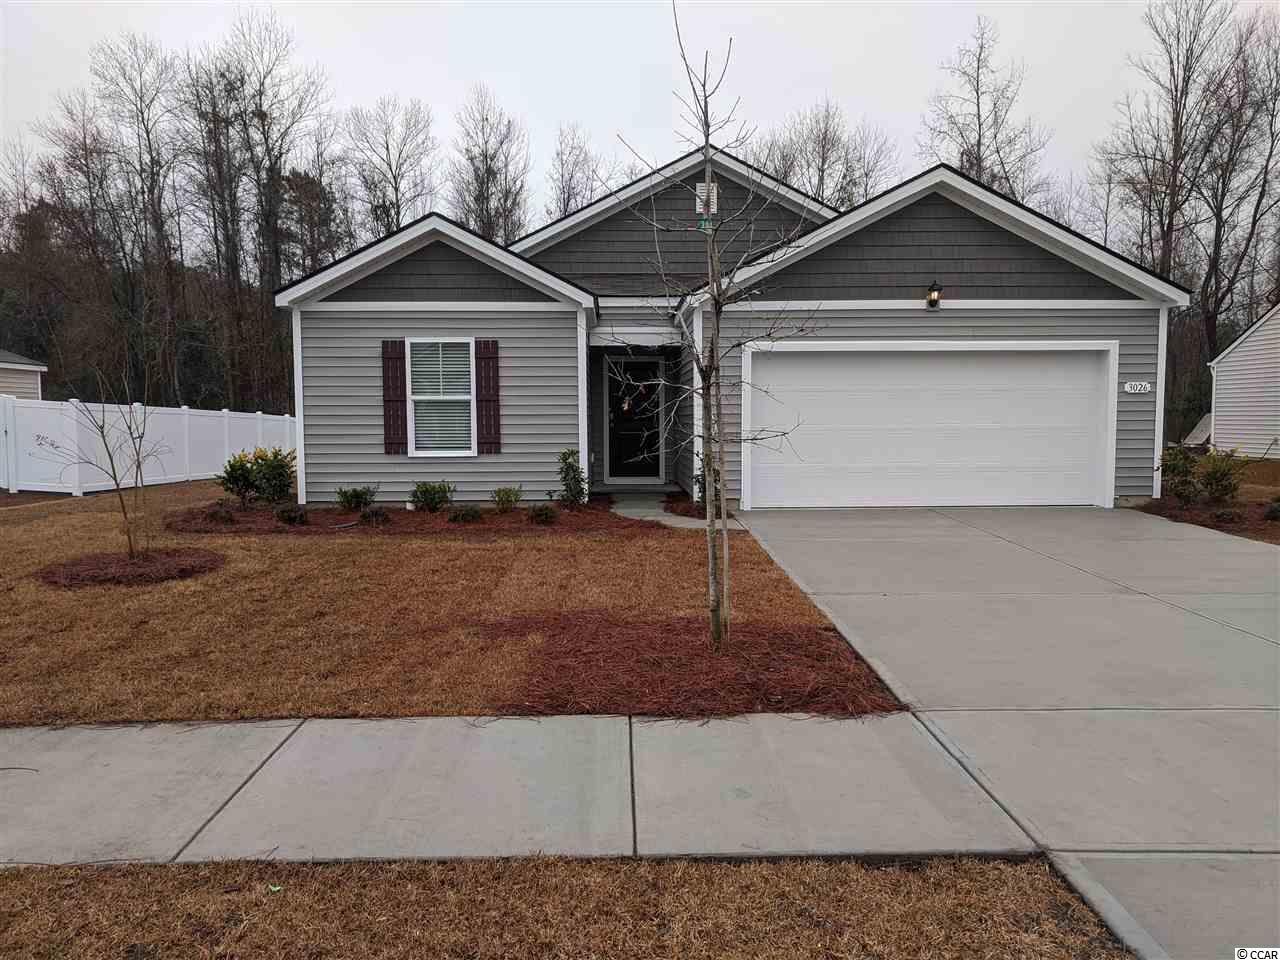 The Macon is a one level home with 3 BR 2 Bath, 1343 heated sq. ft. plus a 2-car garage with an open floor plan that features a comfortable kitchen which opens to your large living/dining room which is perfect for entertaining. Granite counters, pantry and stainless appliances. Low maintenance luxury floating vinyl wood plank floors throughout main living room, kitchen, both baths and the laundry room.  The owner's suite is located off the back of the home and offers a large walk-in-closet and Master Bath with 5 ft. walk-in shower, and cultured marble vanity top. Oak Glenn features large home sites with a minimum of 20 ft. of separation between homes. The community is located within minutes to Historic Downtown Conway, shopping, restaurants, and the River Walk. Pictures and virtual tour are of the same plan model home and are for illustration purposes only. Home to begin construction in August with estimated completion in mid-fall. You may still have time to make your own color design choices!! Pictures and virtual tour are of a Macon plan in another on of our Express Communities.  Home and community information, including pricing, included features, terms, availability and amenities, are subject to change and prior sale at any time without notice or obligation. Square footages are approximate. Pictures, photographs, colors, features, and sizes are for illustration purposes only and will vary from the homes as built.  Equal housing opportunity builder.